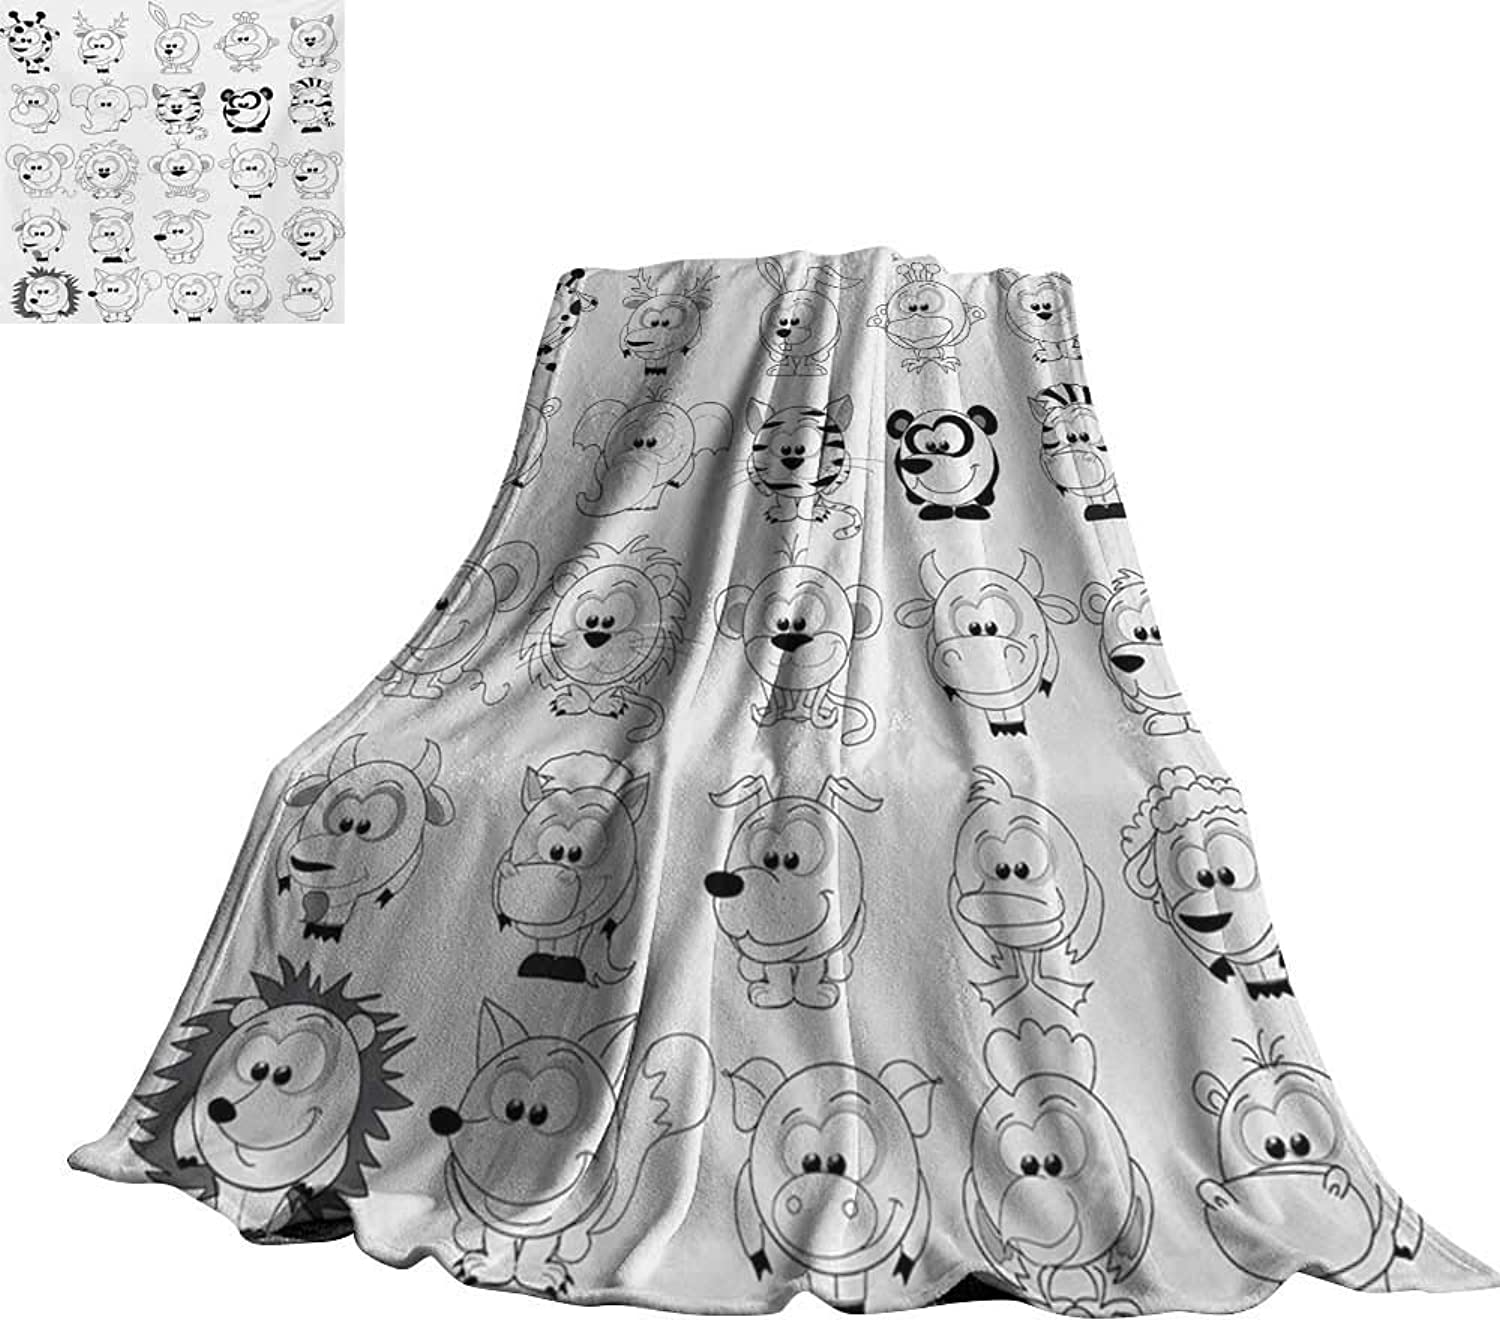 RenteriaDecor Doodle,Personalized Blankets Assortment of Cartoon Style Animals Cat Zebra Girraffe Pig Panda Monkey Animal Fun Blanket for Bed Couch 70 x50